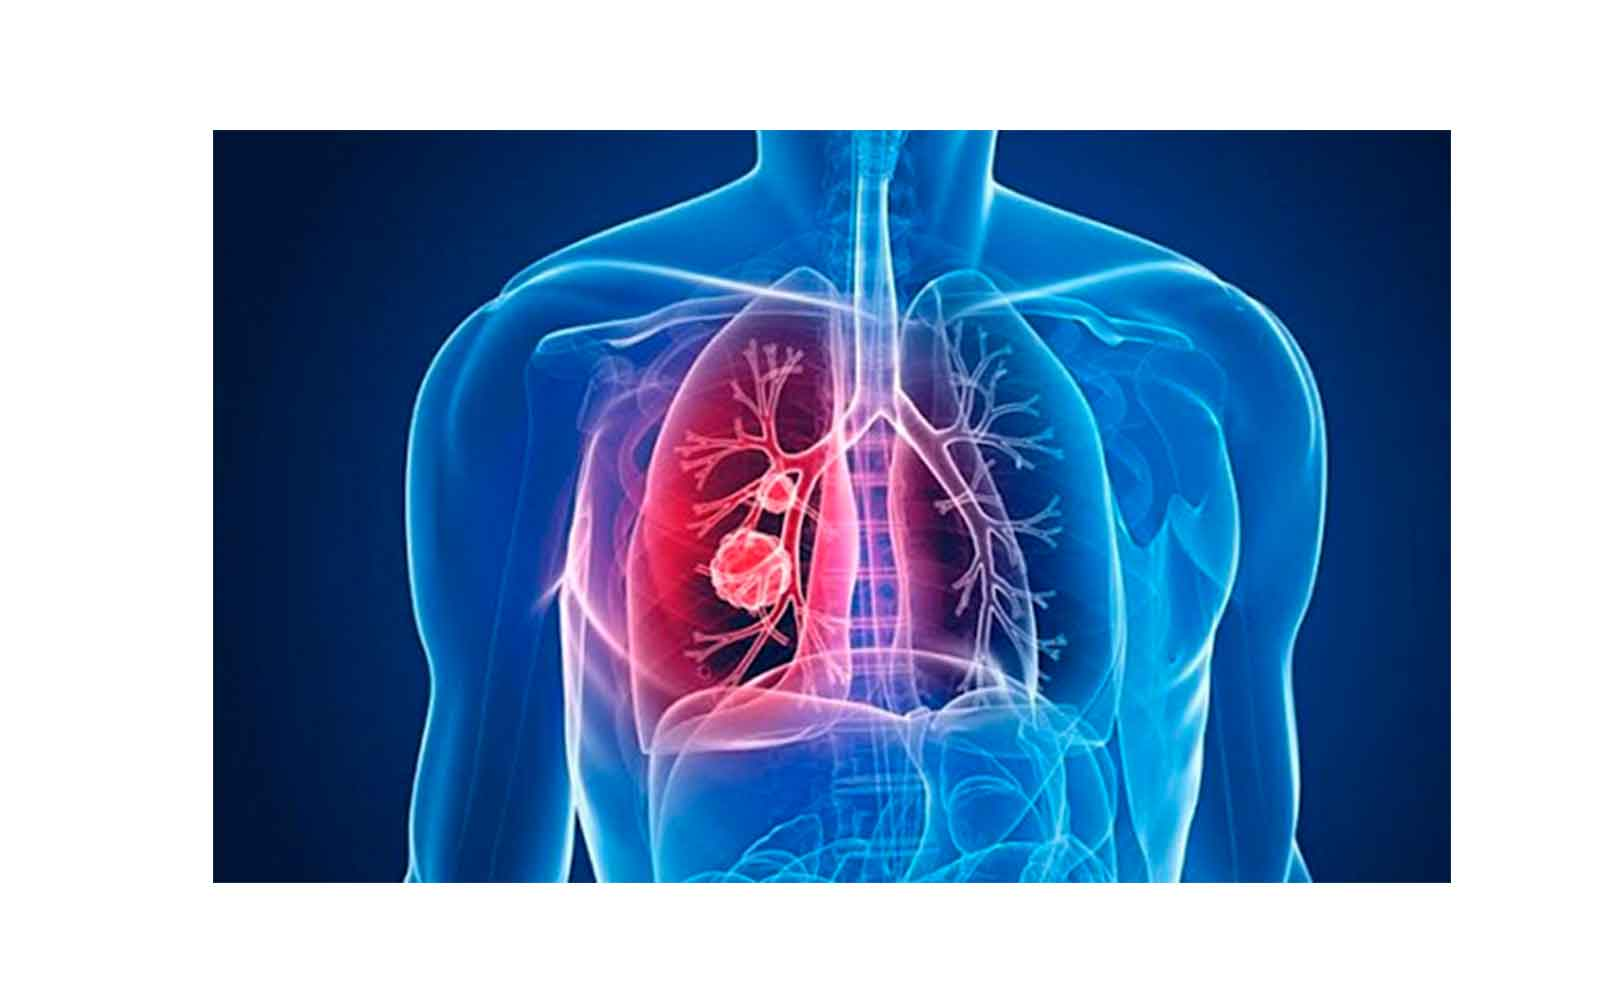 clinica internacional hipertension pulmonar